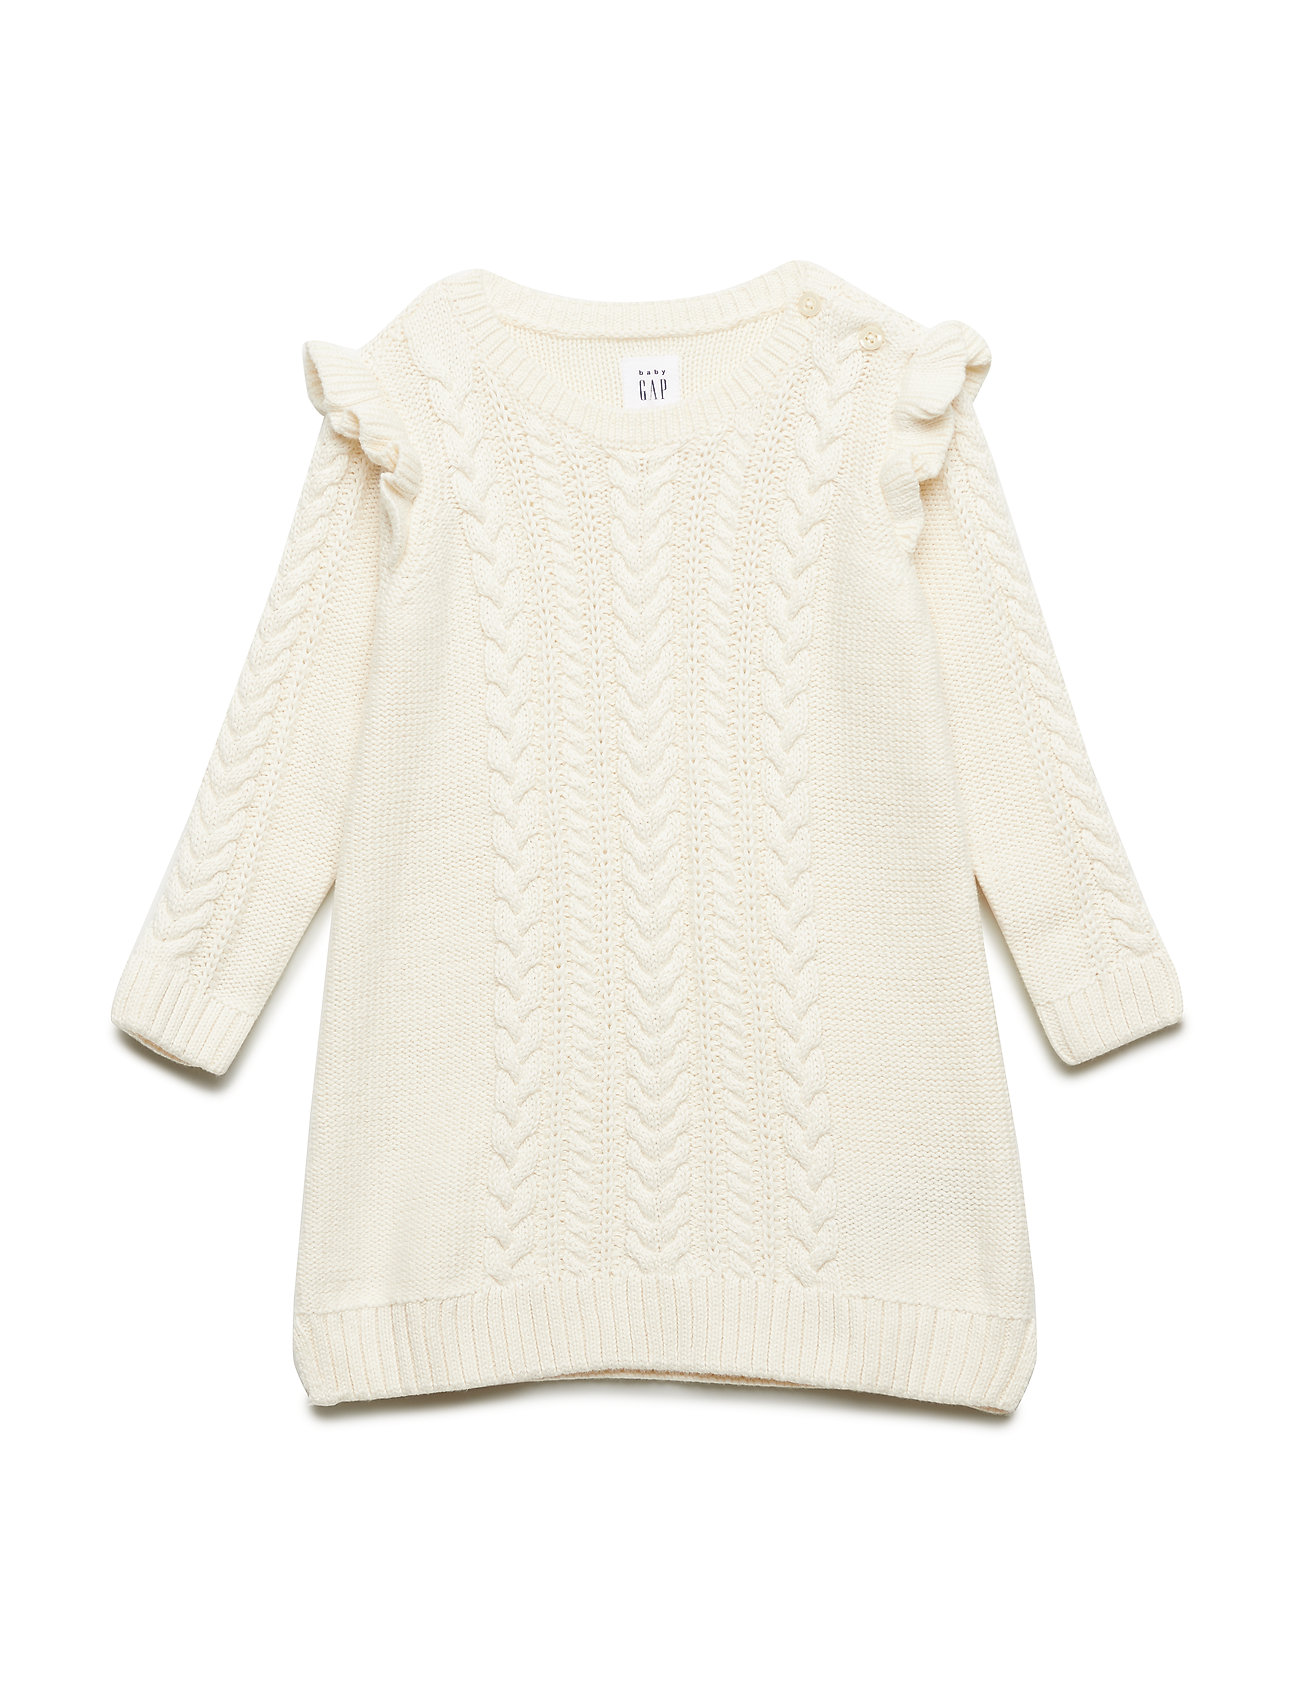 GAP CABLE SWTR DRS - IVORY FROST